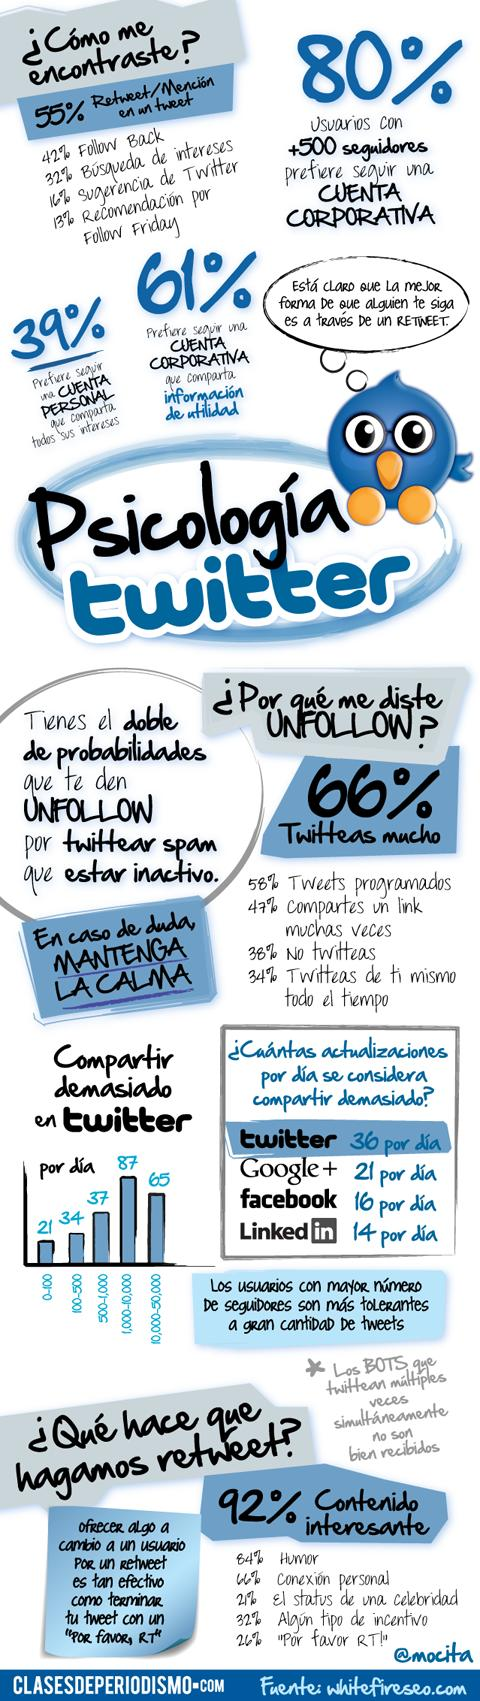 formacion redes sociales Psicologa Aplicada a Twitter